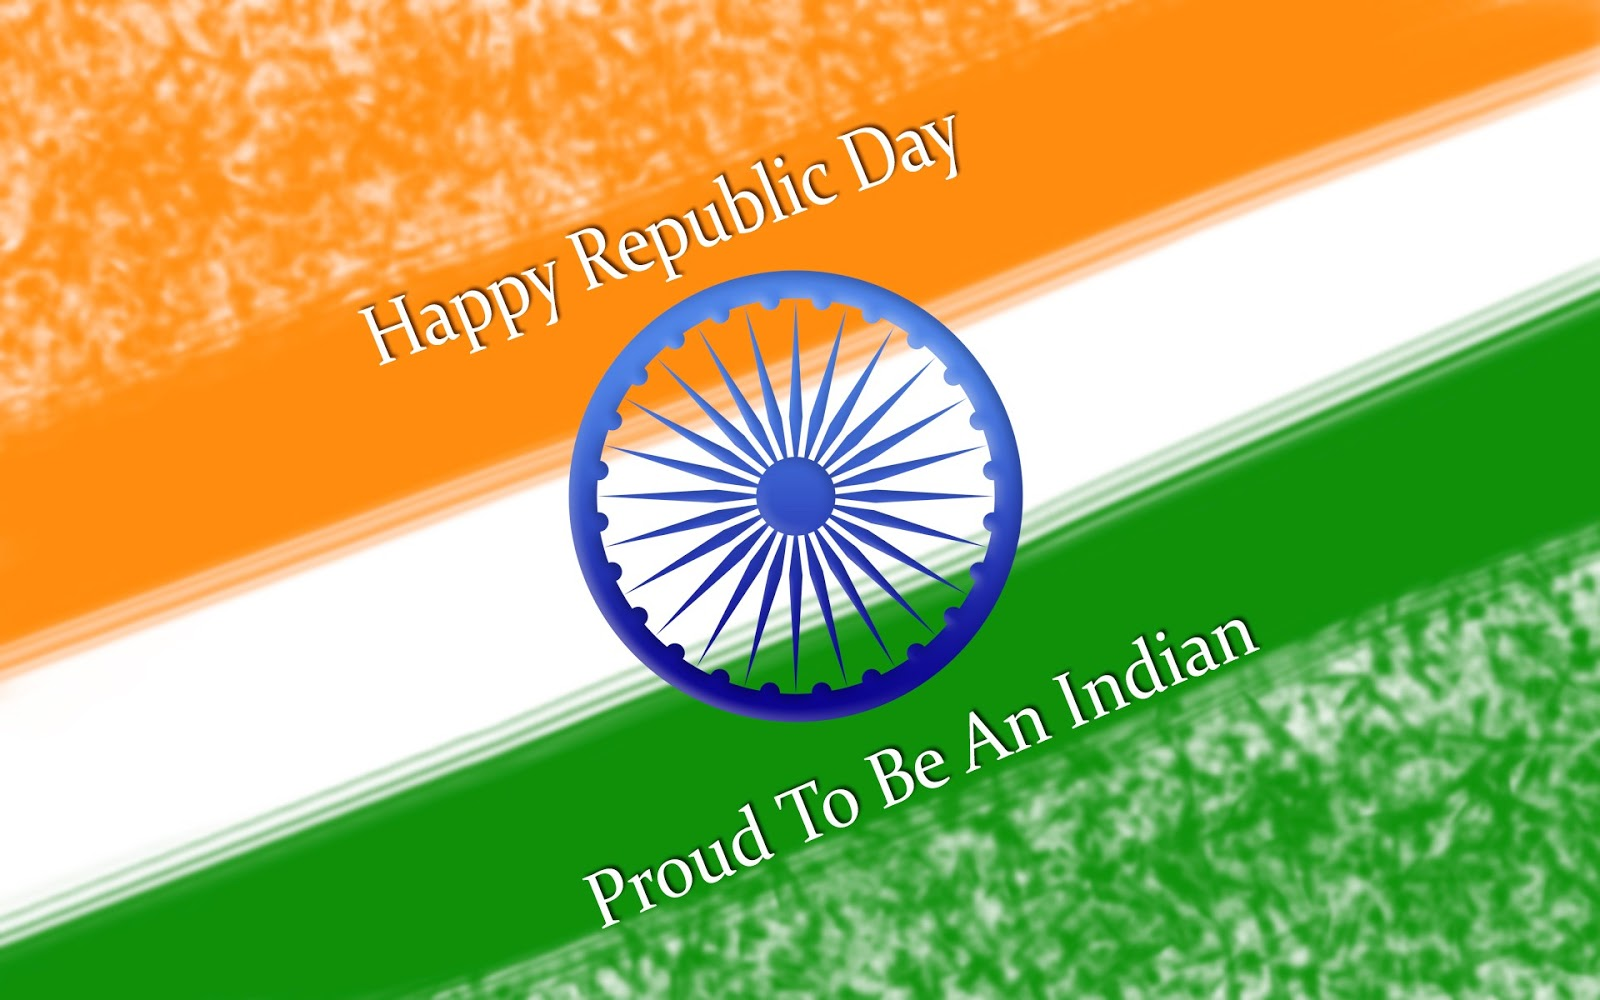 republic day in hindi